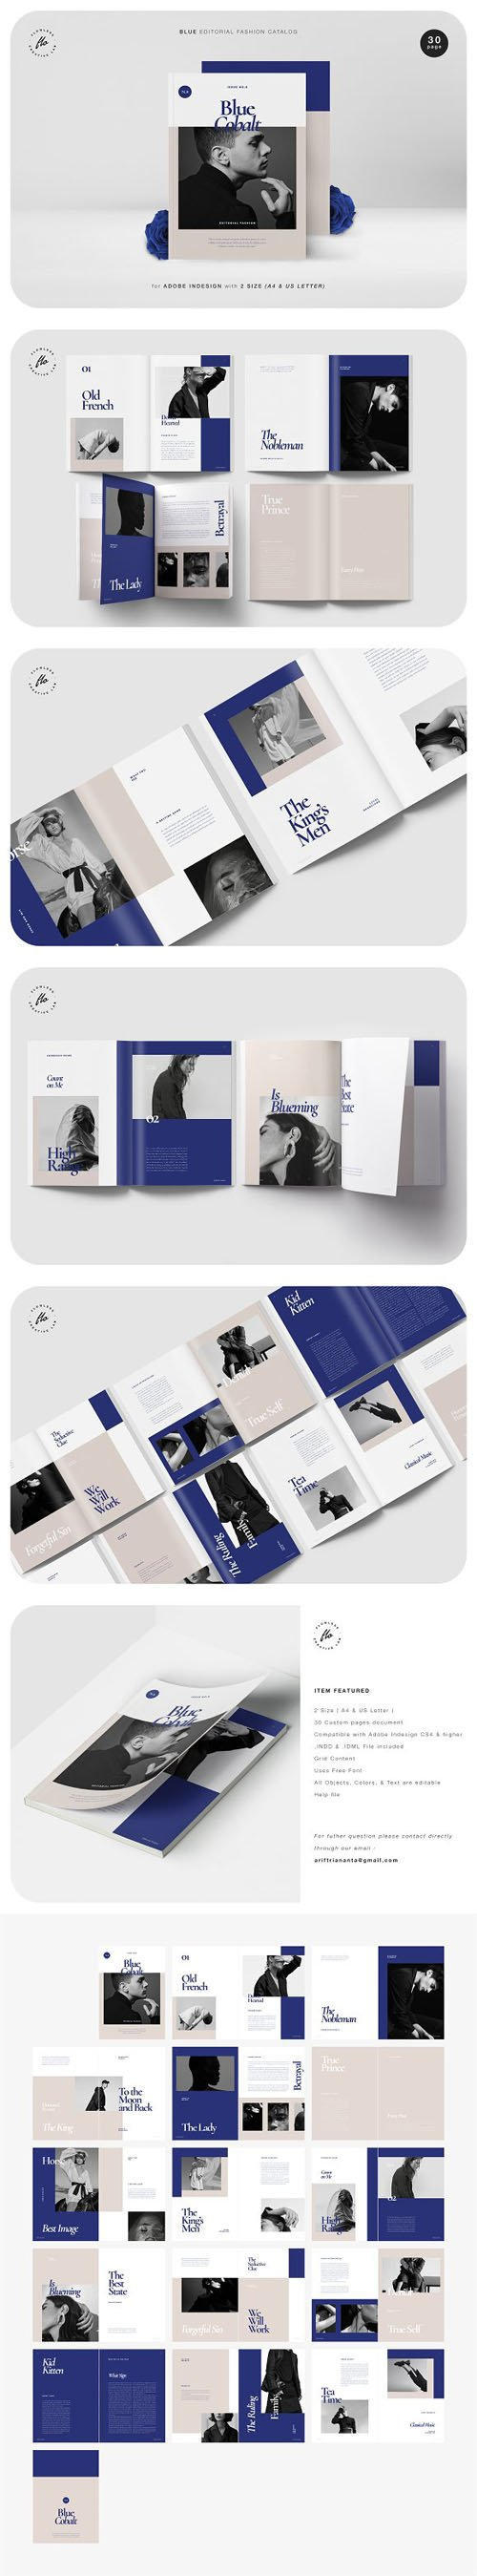 Blue Editorial Fashion Catalog Indesign INDD Templates [A4/US Letter]